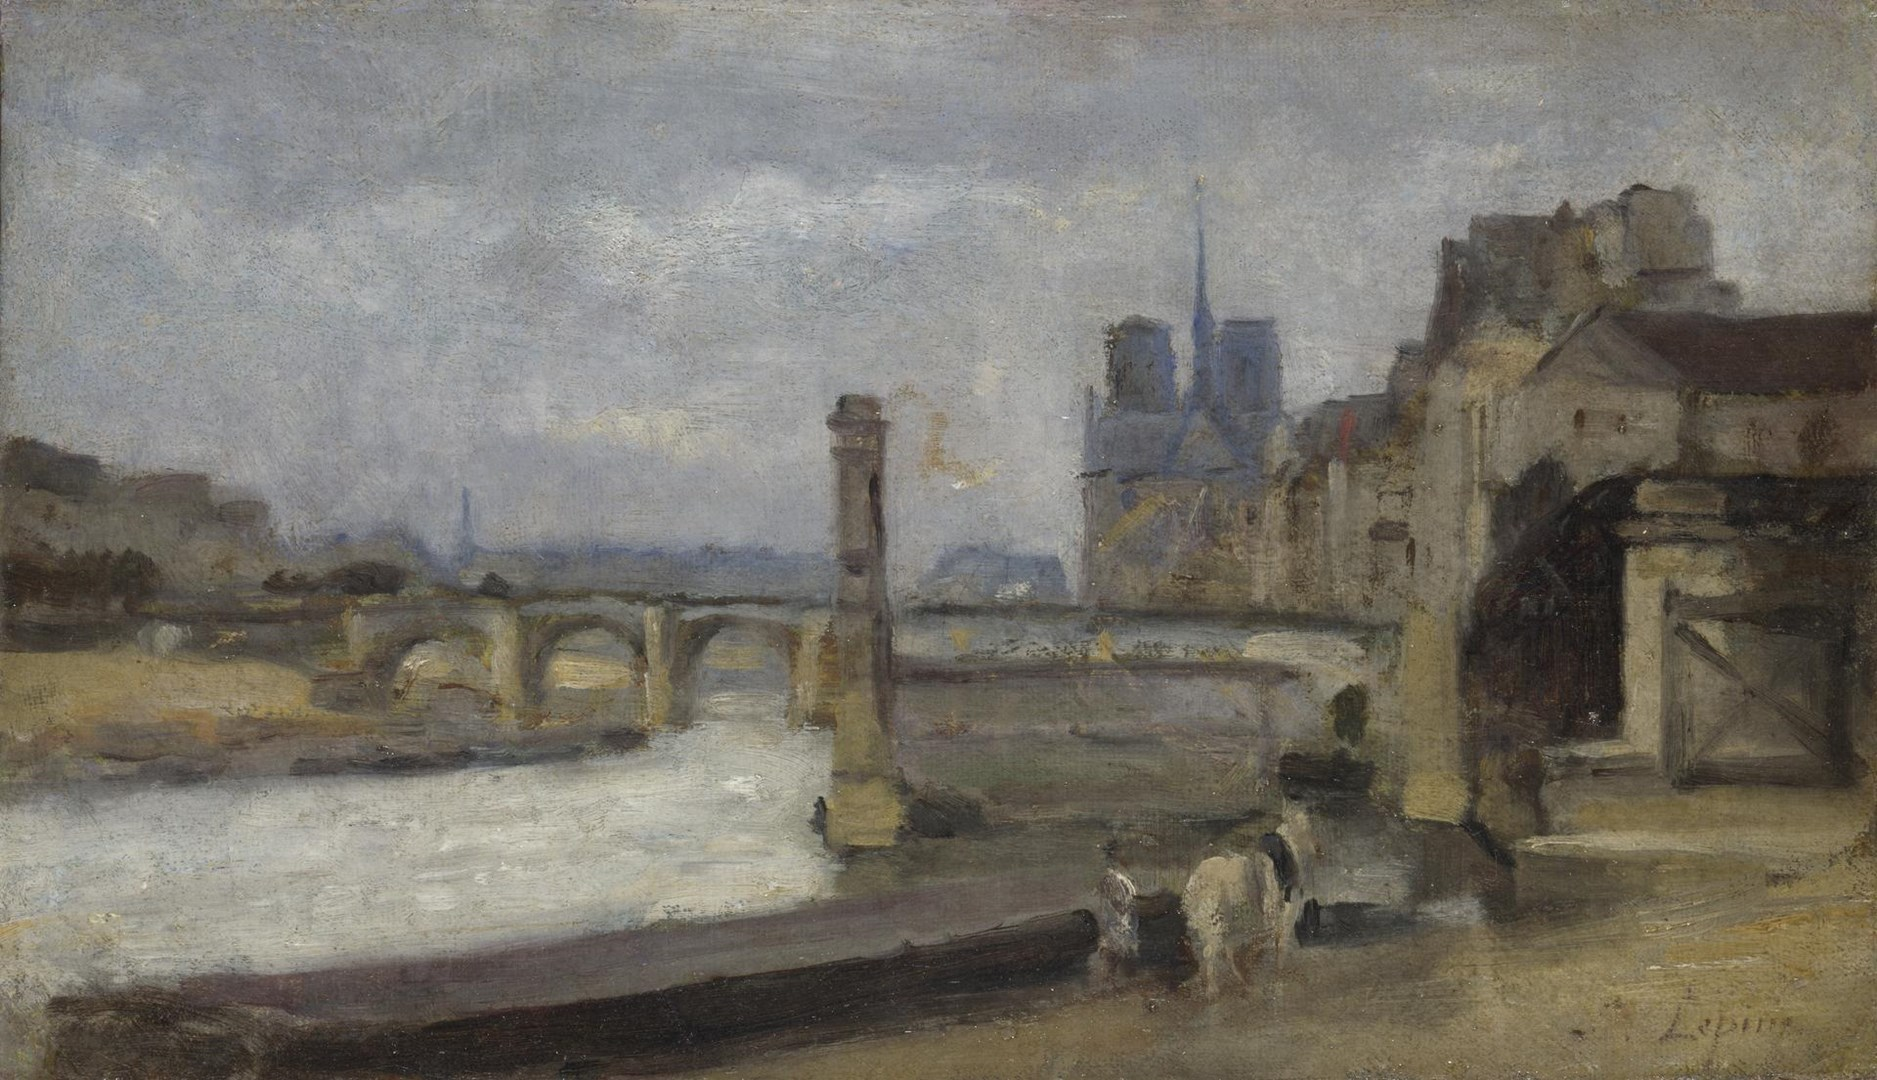 The Pont de la Tournelle, Paris by Stanislas-Victor-Edmond Lépine